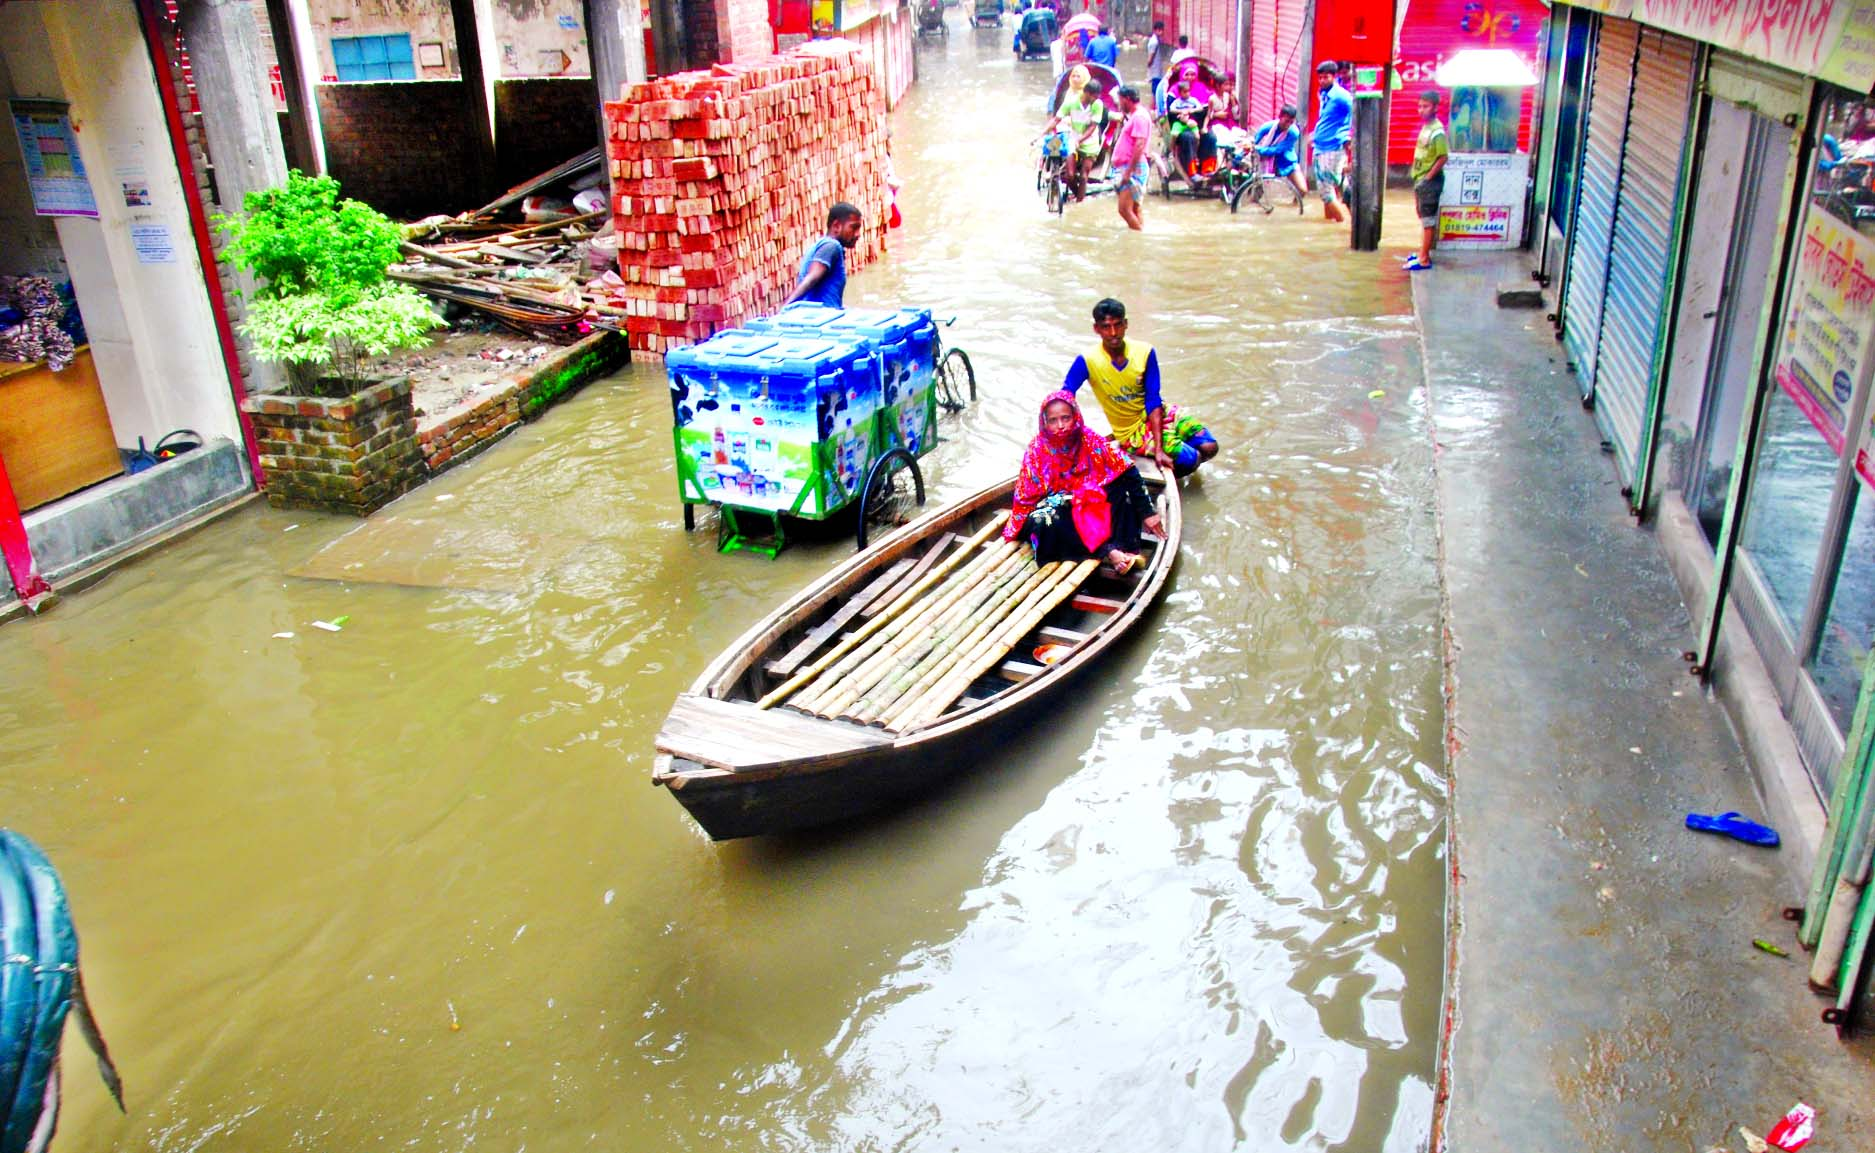 The main thoroughfare at Ragerbagh area went under knee deep water as rain waters are stagnant for a few days. Locals using boat side by side with-rickshaw, van to help pass the pedestrians as transport during this monsoon.